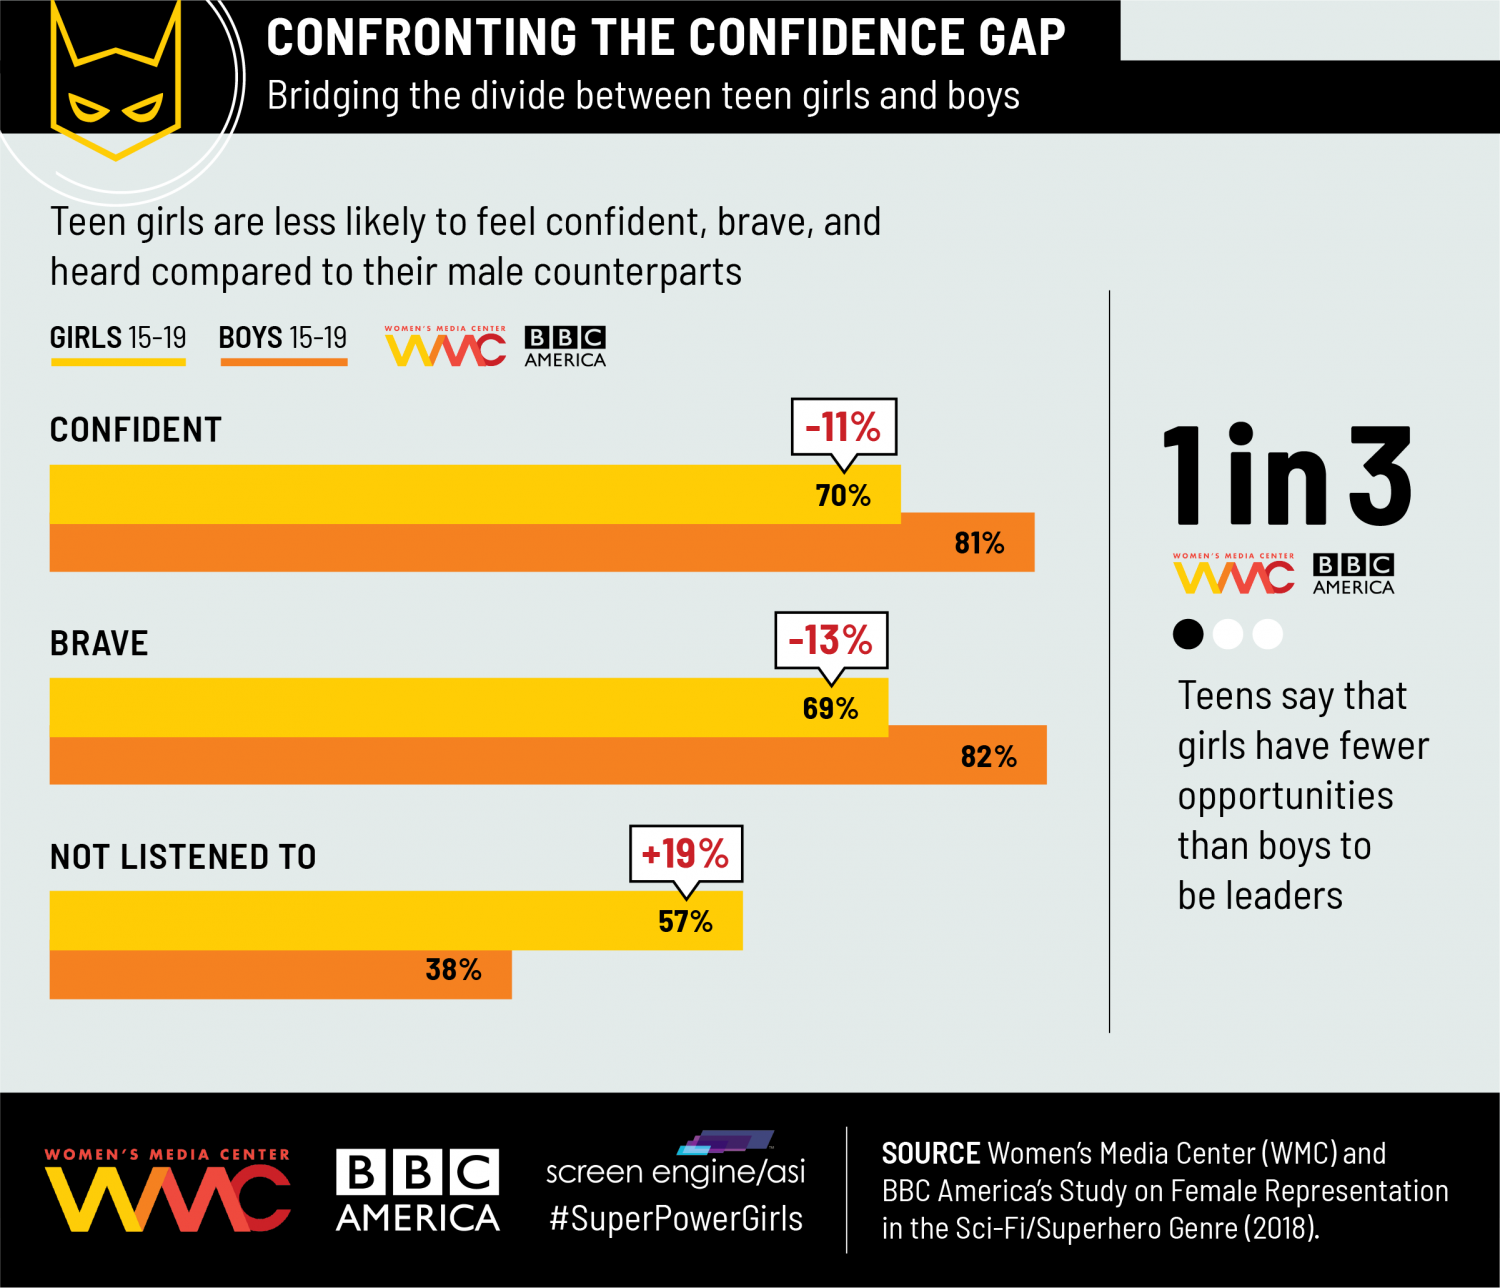 Confronting Confidence Gap Infographic